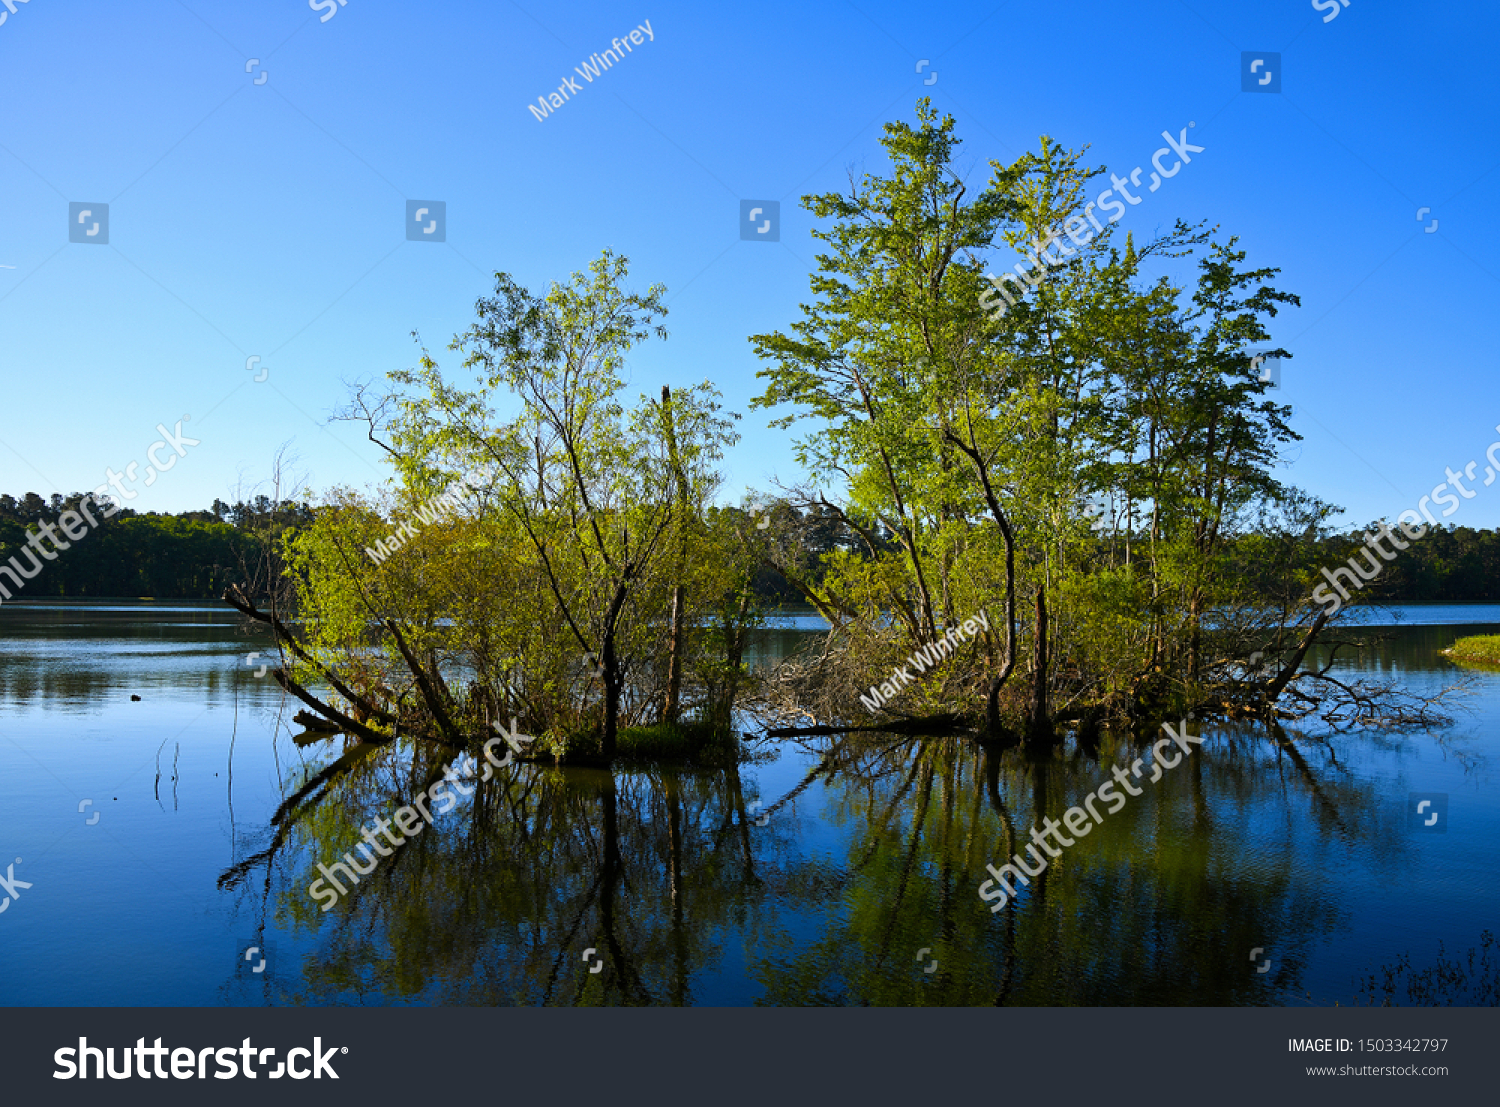 Early Morning view of the Lake with Trees Reflected in the Water